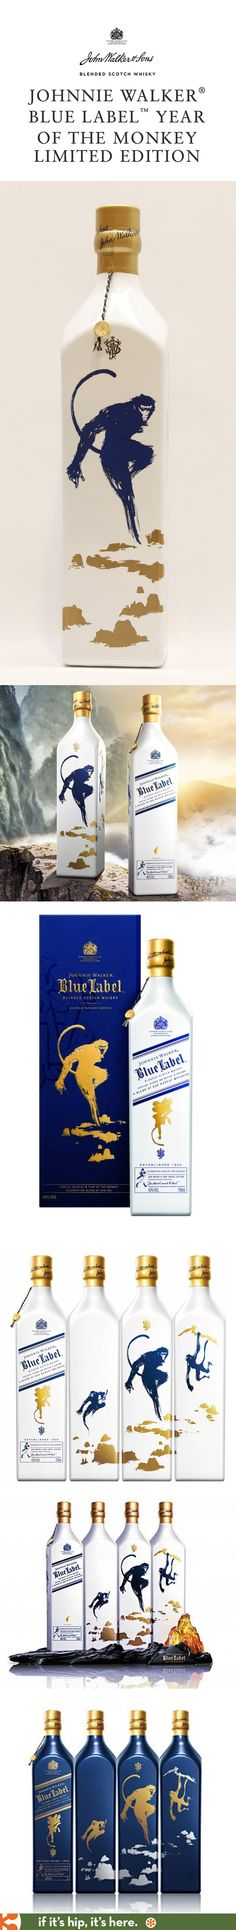 Johnnie Walker Blue Label Year Of The Monkey Limited Edition Bottle variations for Asia and US.